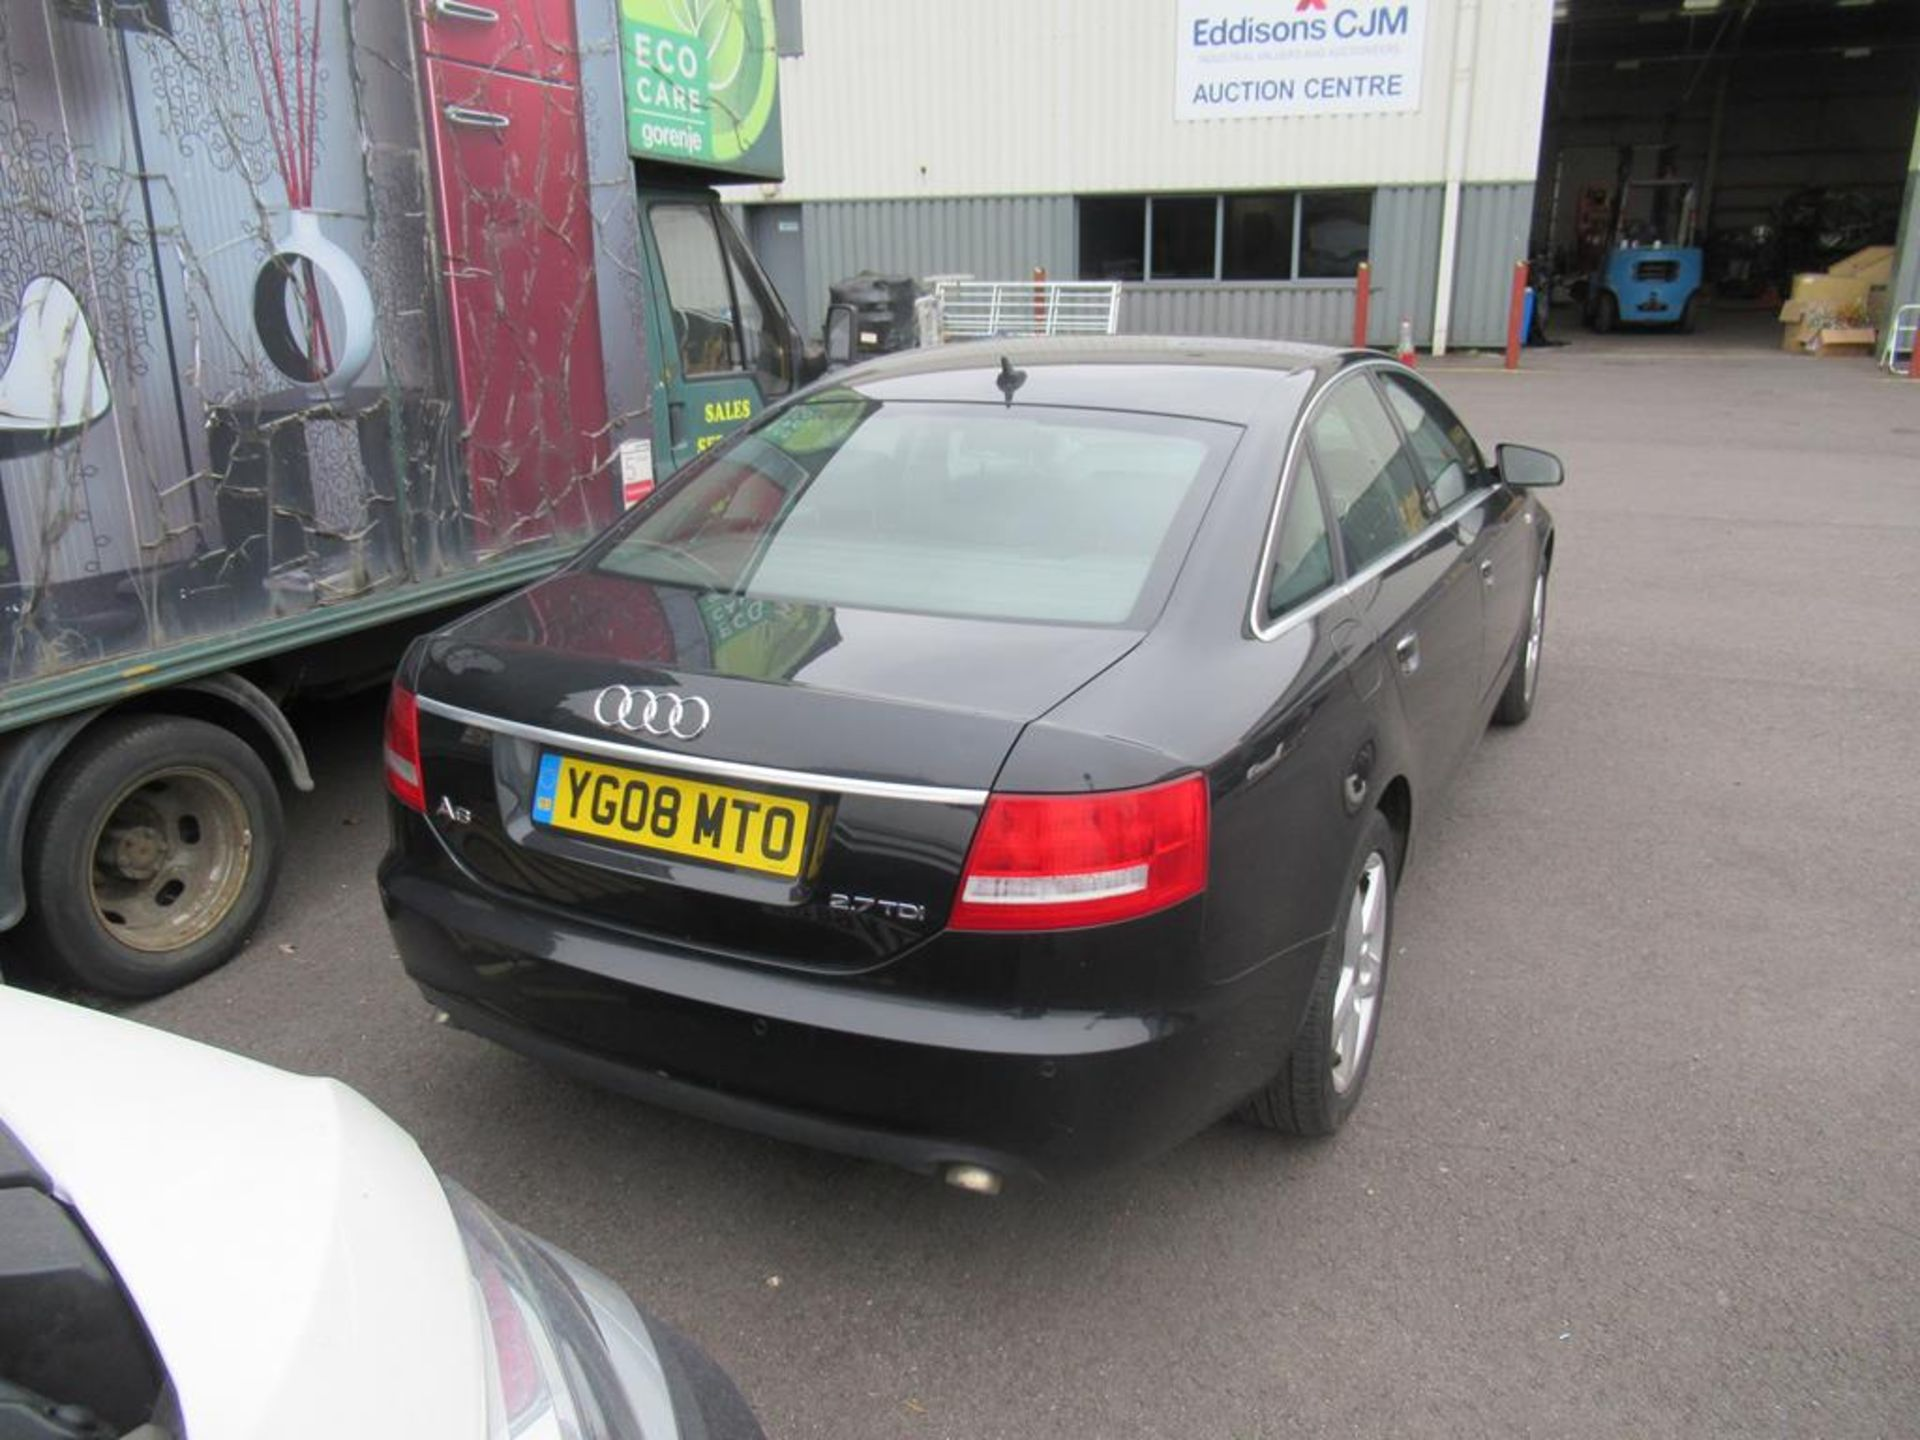 Audi A6 2.7TDI automatic with SatNav and bluetooth - Image 5 of 16